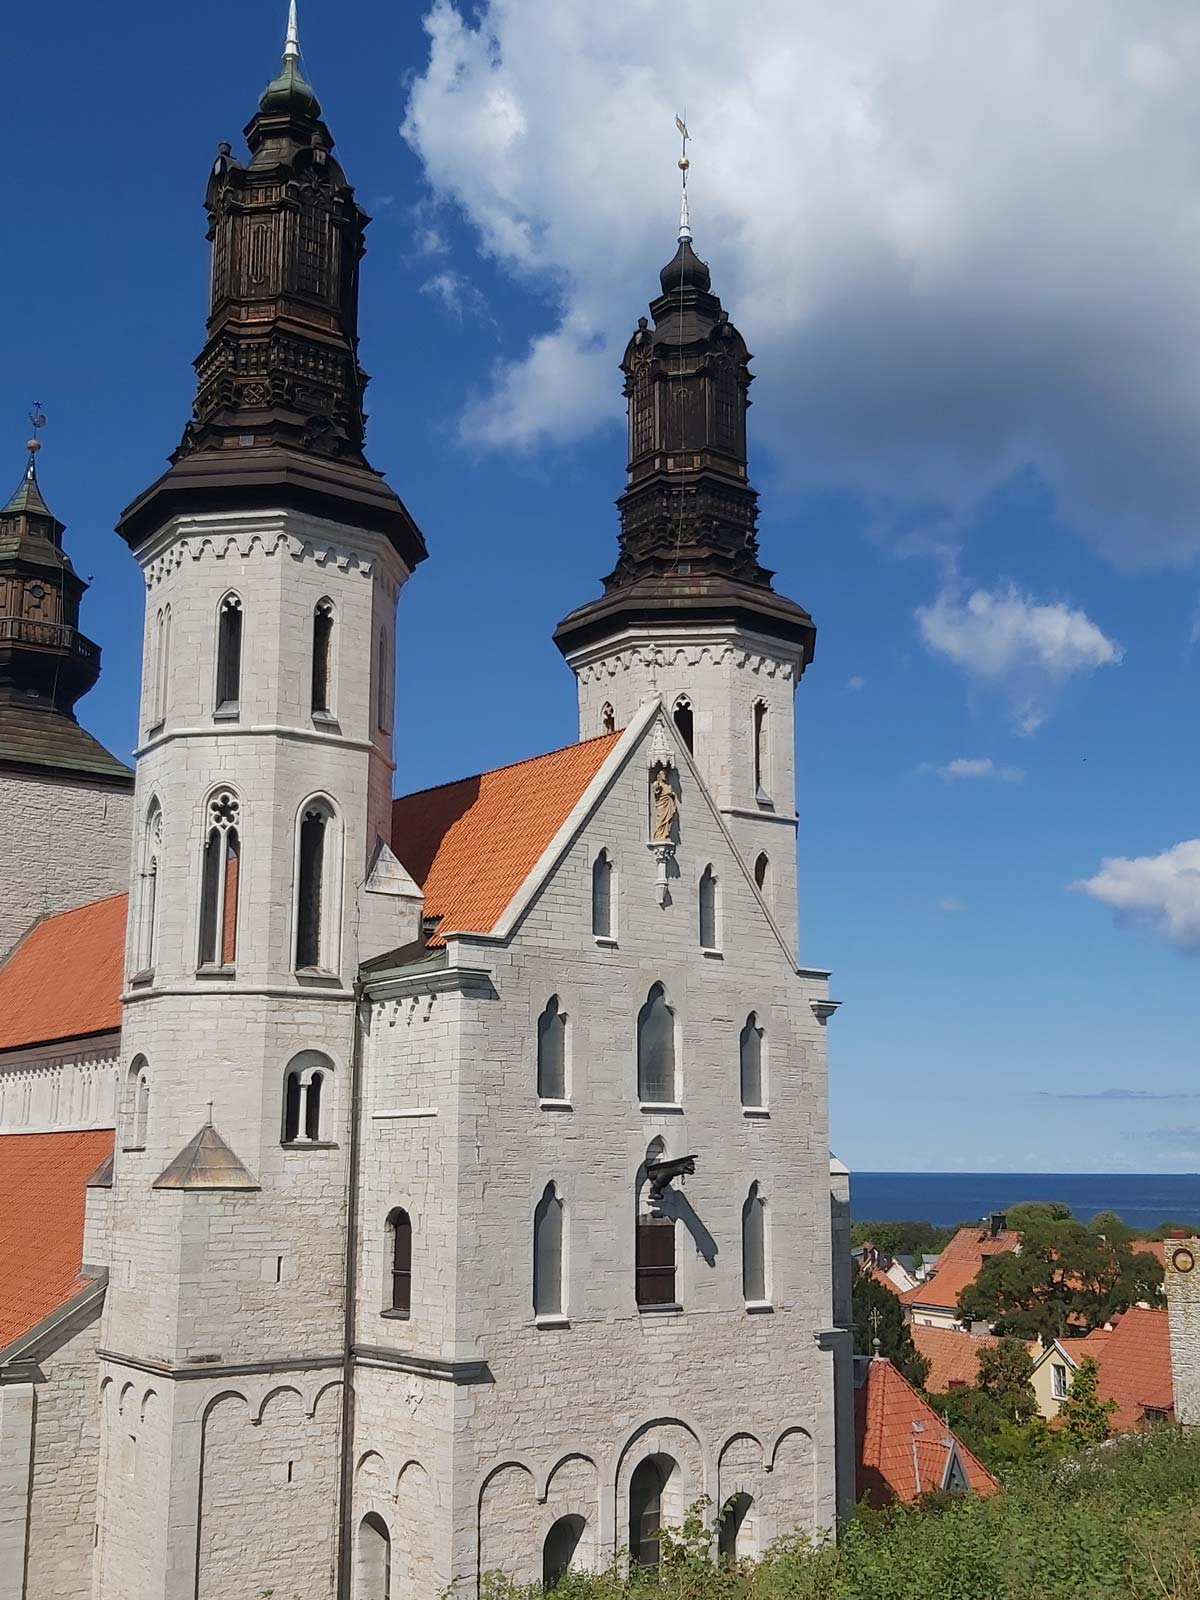 Visby Domkirche